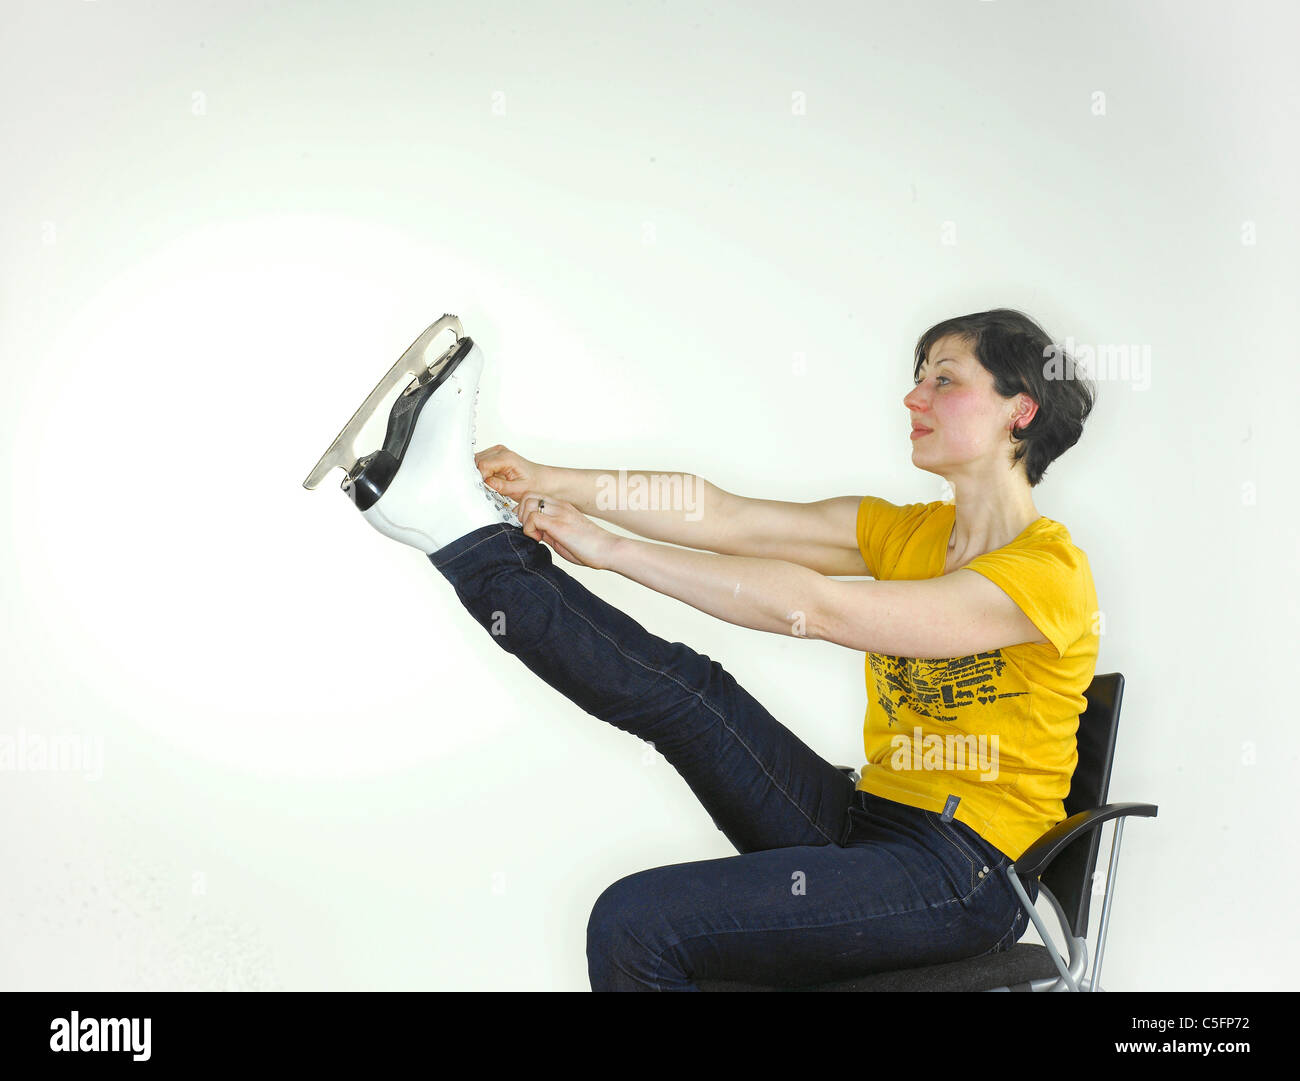 A young caucasian woman putting on an ice skate, holding her leg up high  to tie the laces. - Stock Image